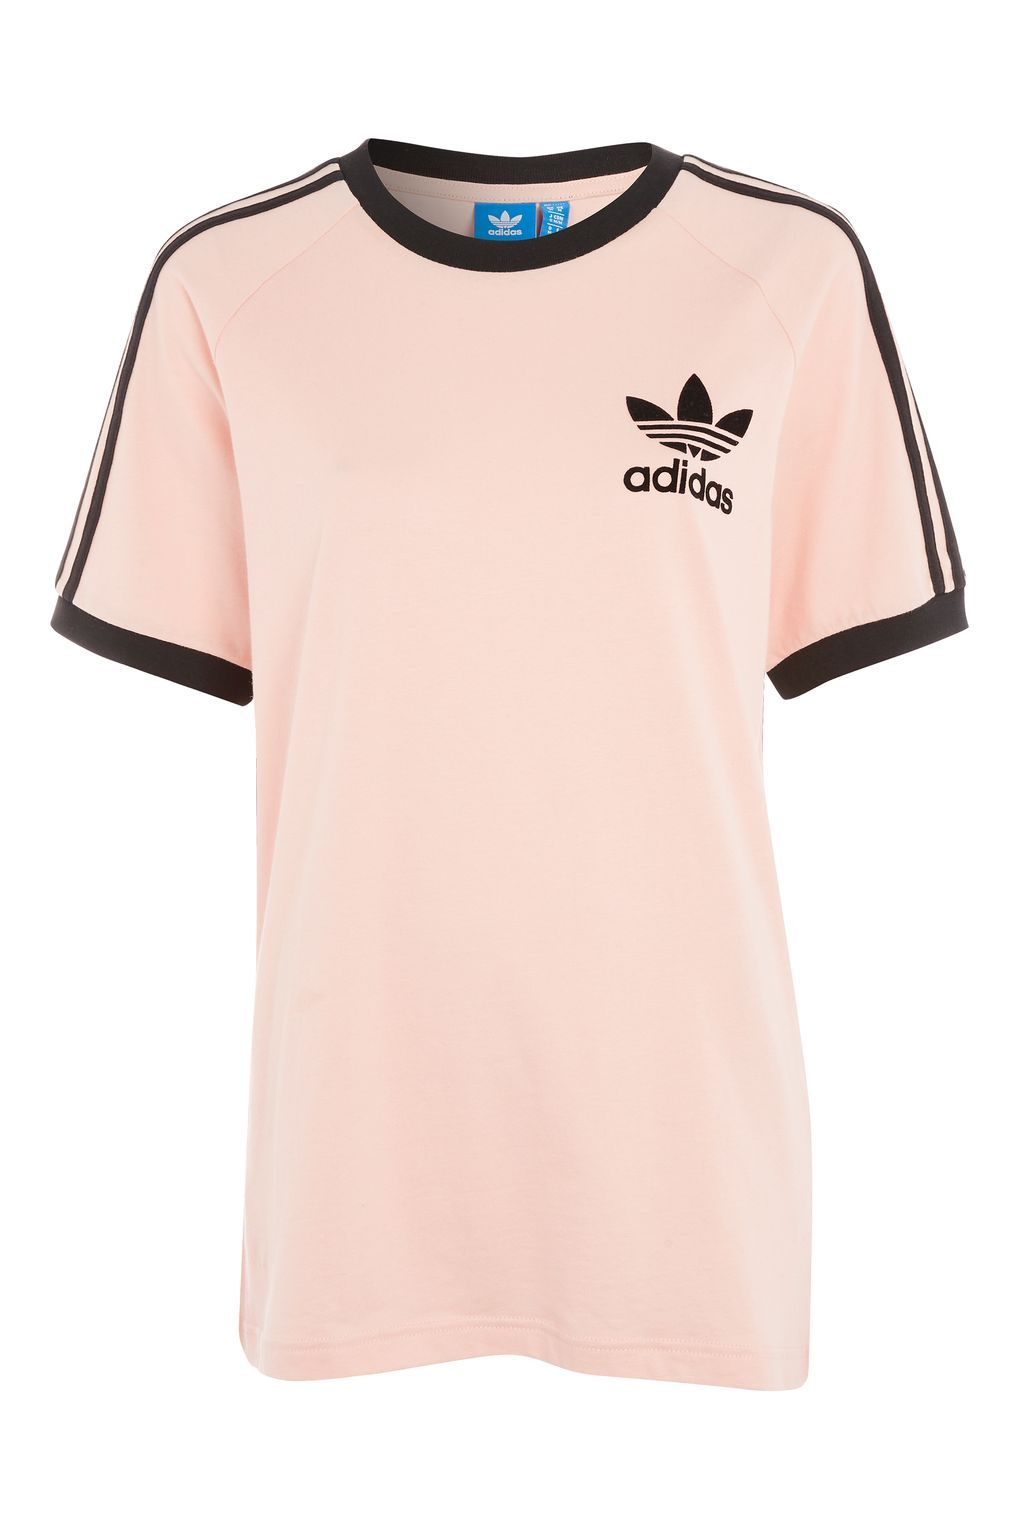 Shirt Adidas In Fashion Originals By New T California Tc3lFJuK1